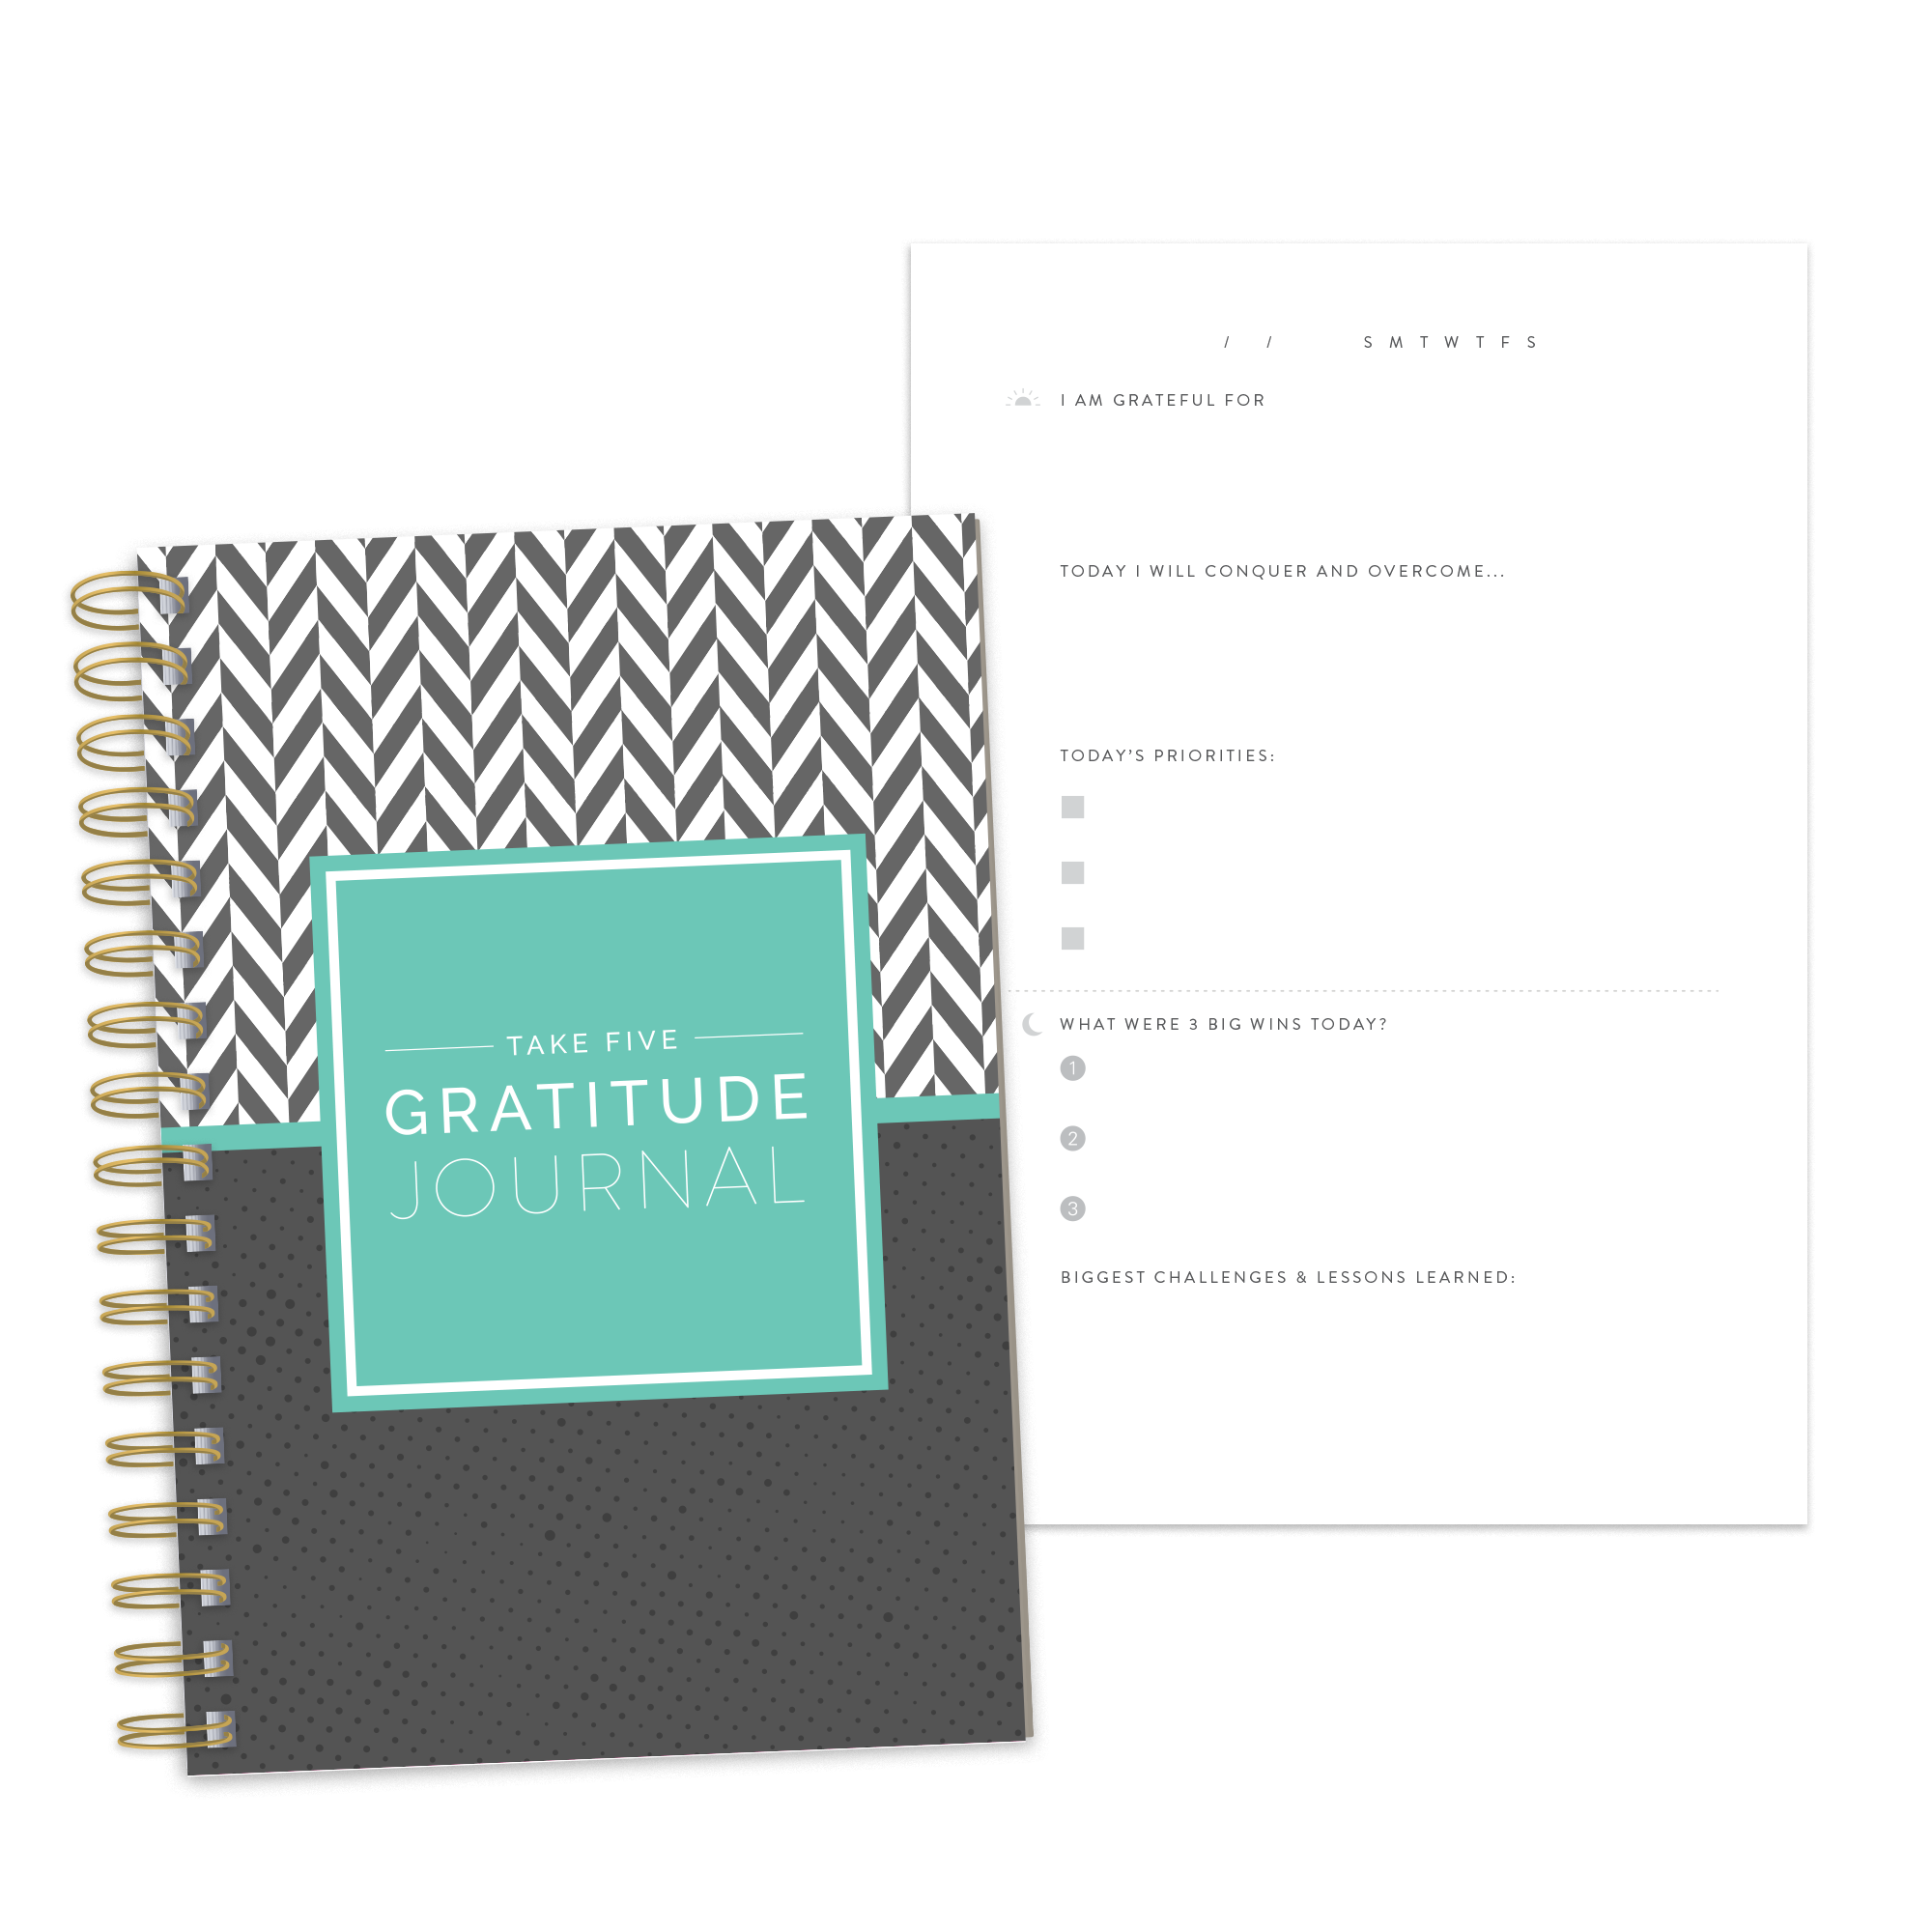 Take Five Daily Gratitude Journal